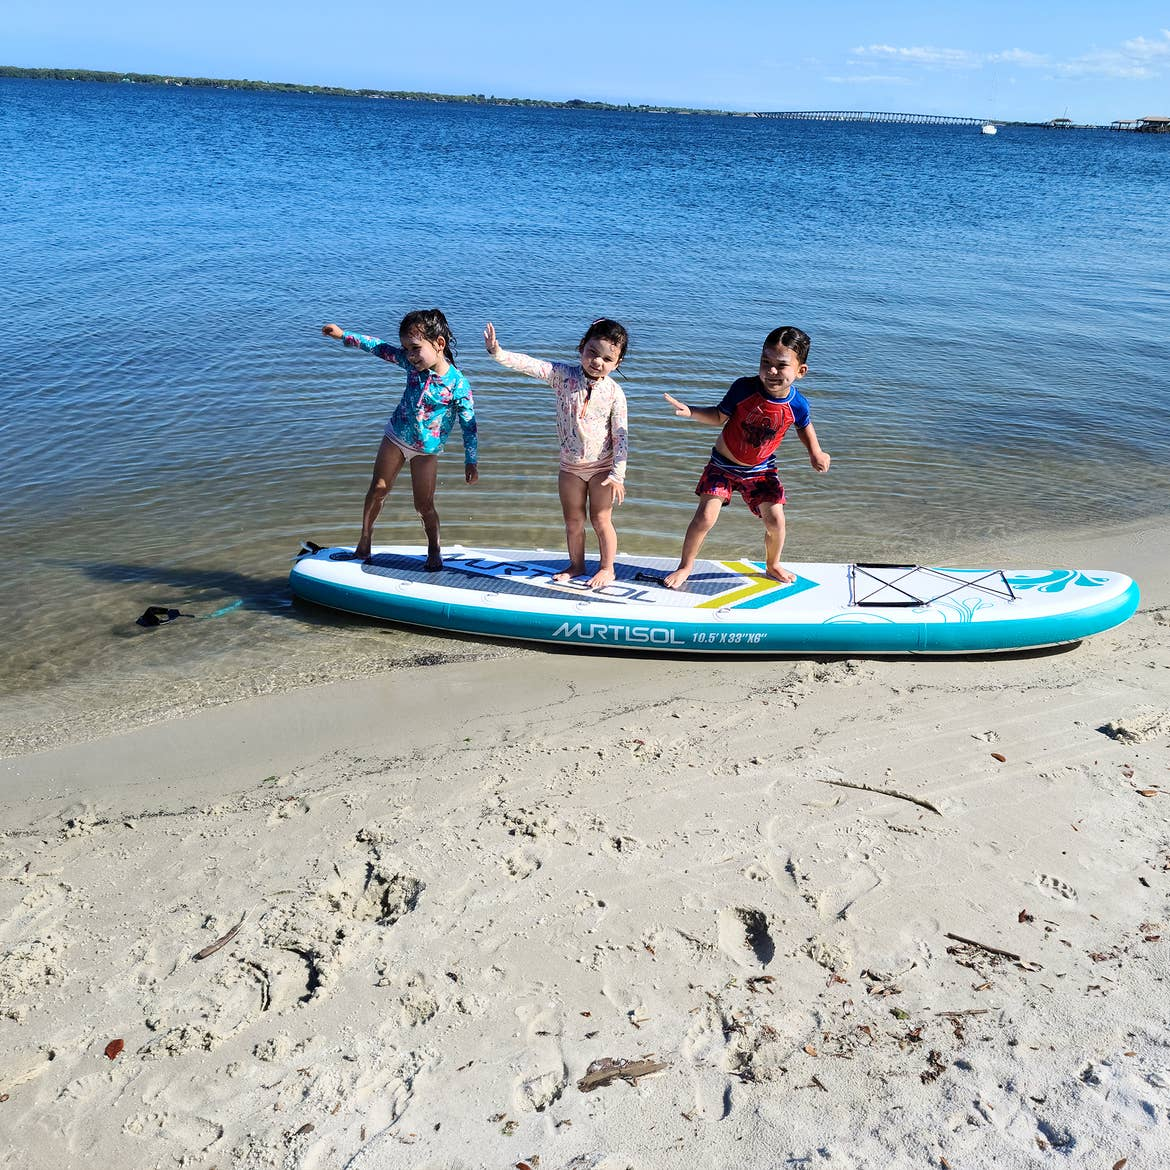 Three Asian Pacific Islander toddlers (left to right: Two girls and a boy) wear pink and blue swimsuits while standing on a paddle board on the sands and water of a beach.